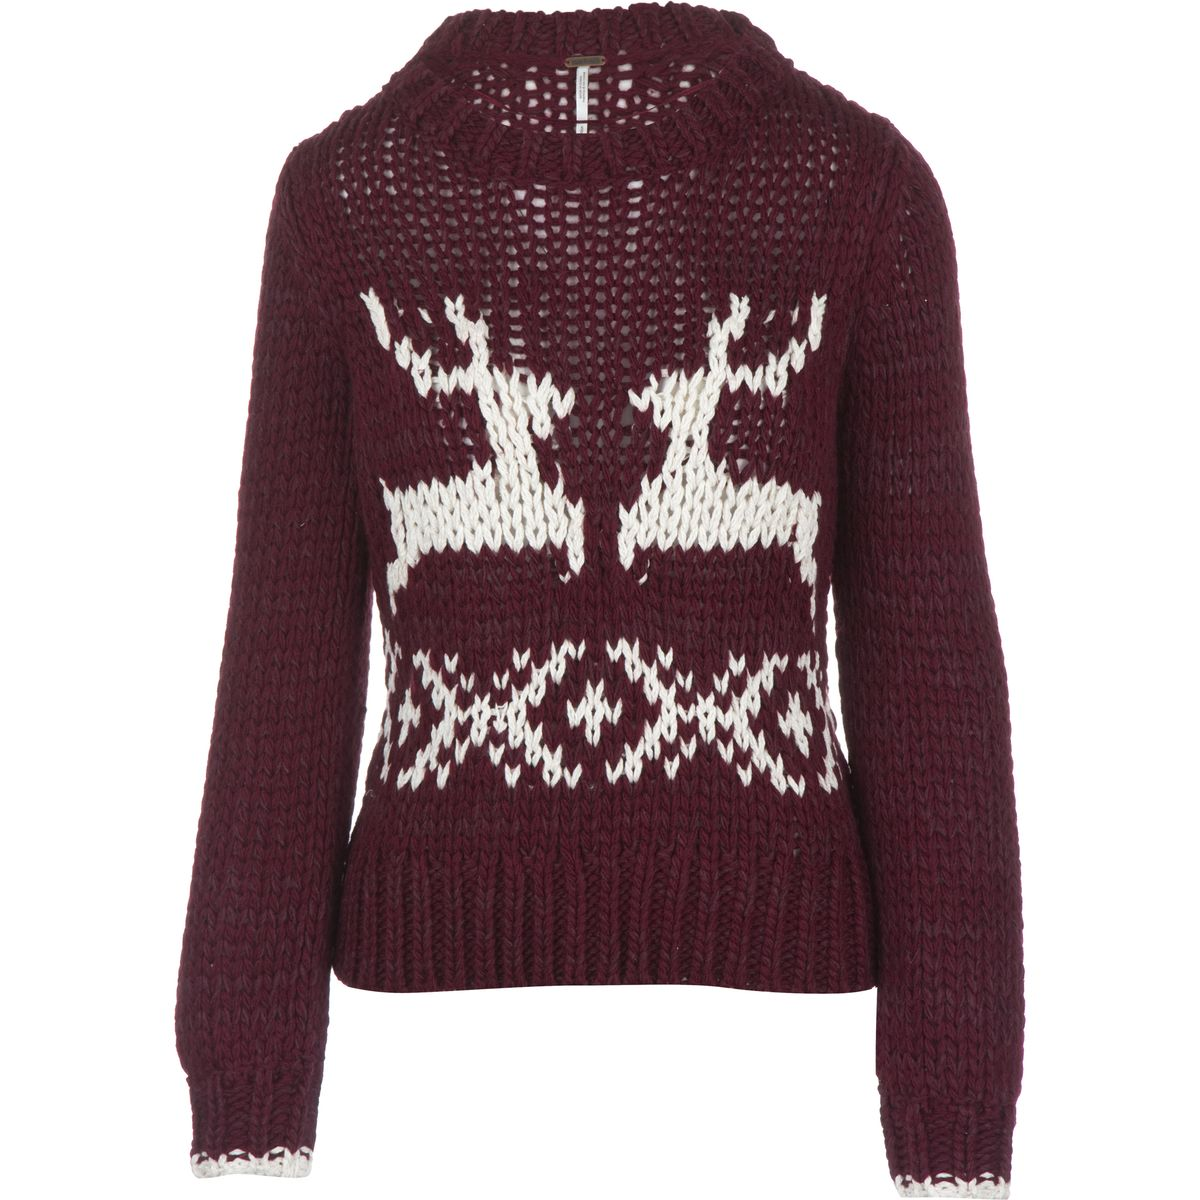 Free People Dancer & Prancer Pullover Sweater - Women